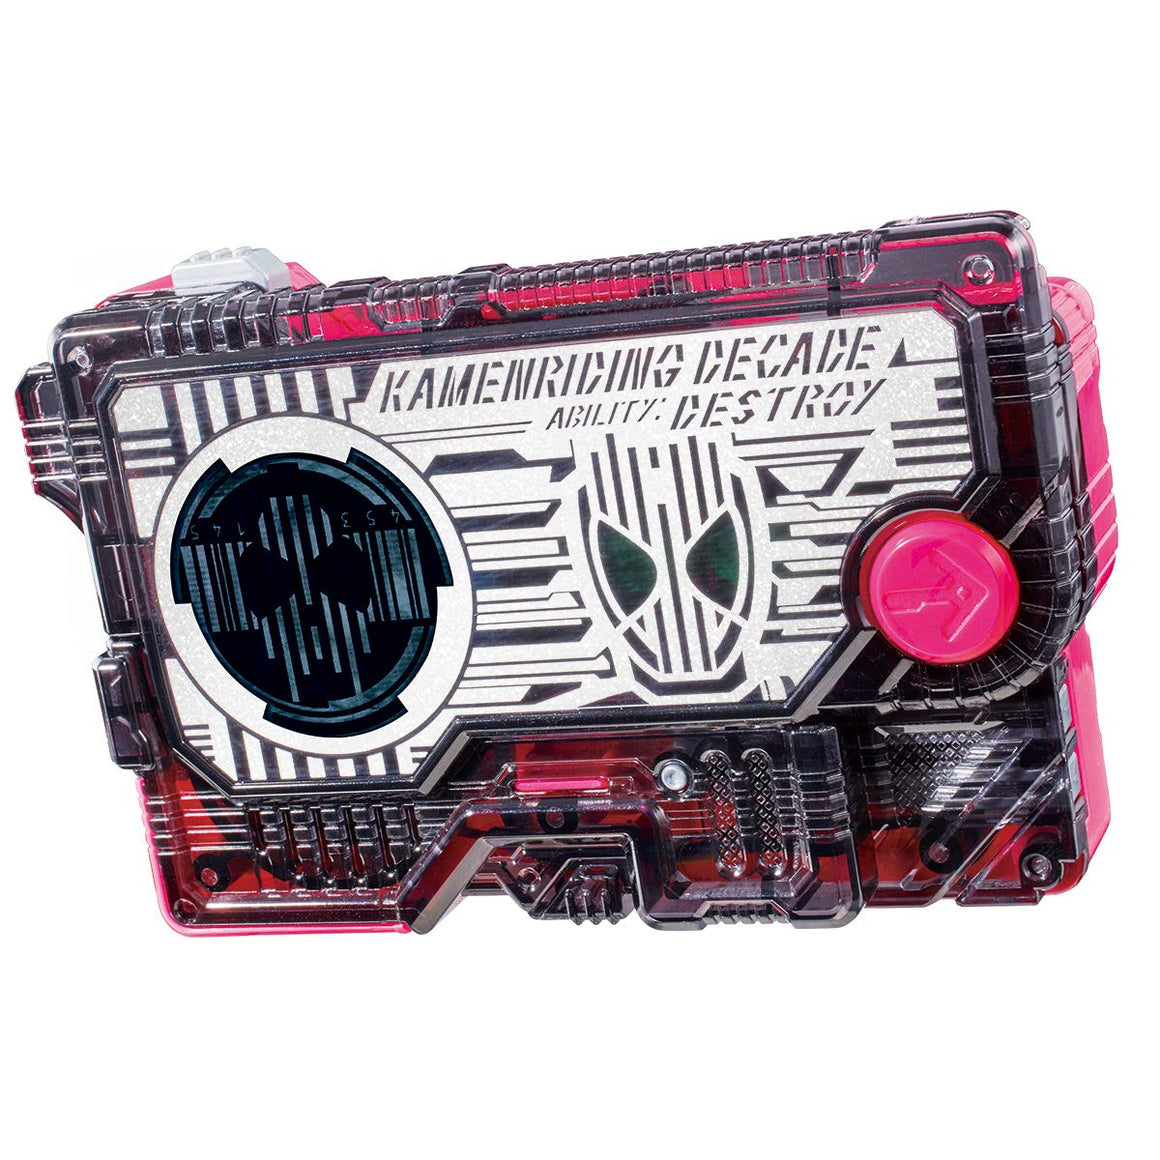 CSTOYS INTERNATIONAL:Kamen Rider 01: DX Kamen Riding Decade Progrise Key